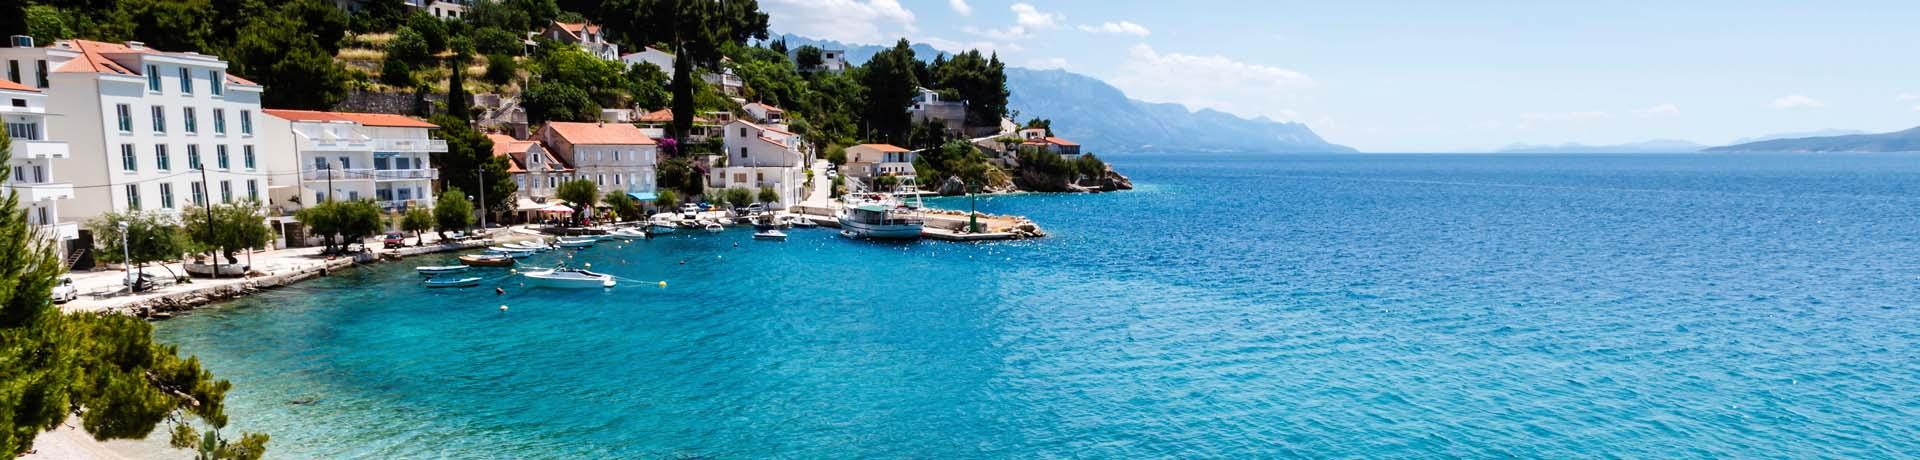 10 Top Hotels In Kroatien Reisewelt Check24